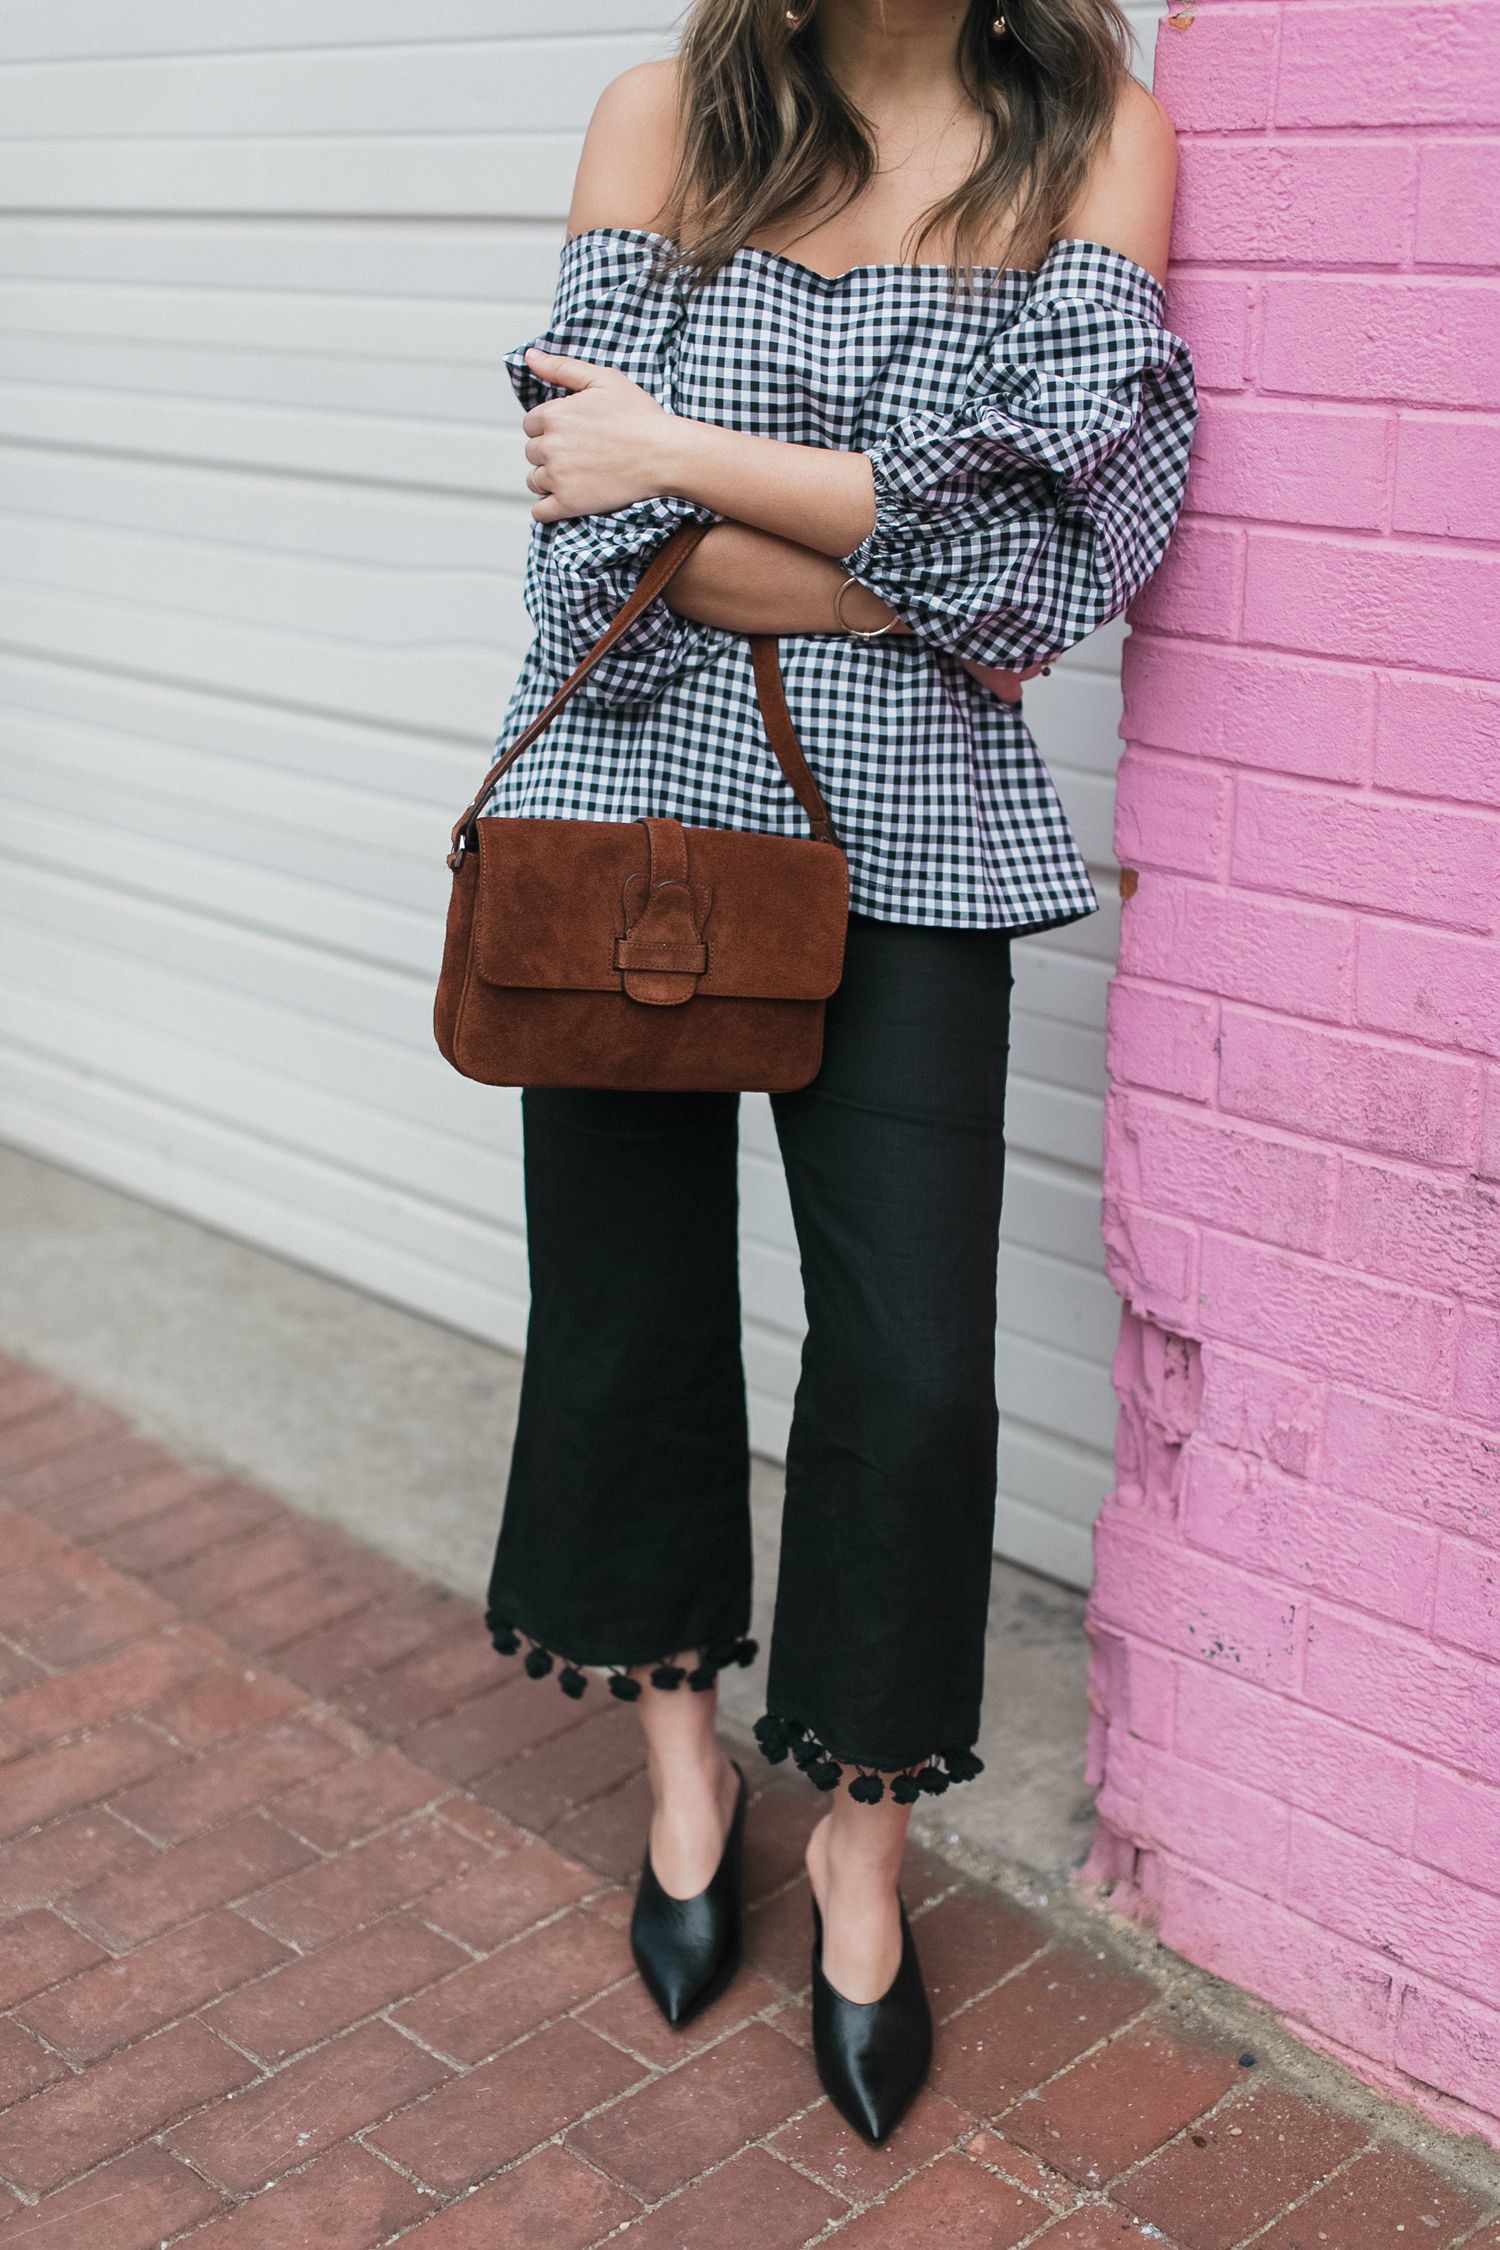 Style MBA Wears Banana Republic Handbag and Zara Pants